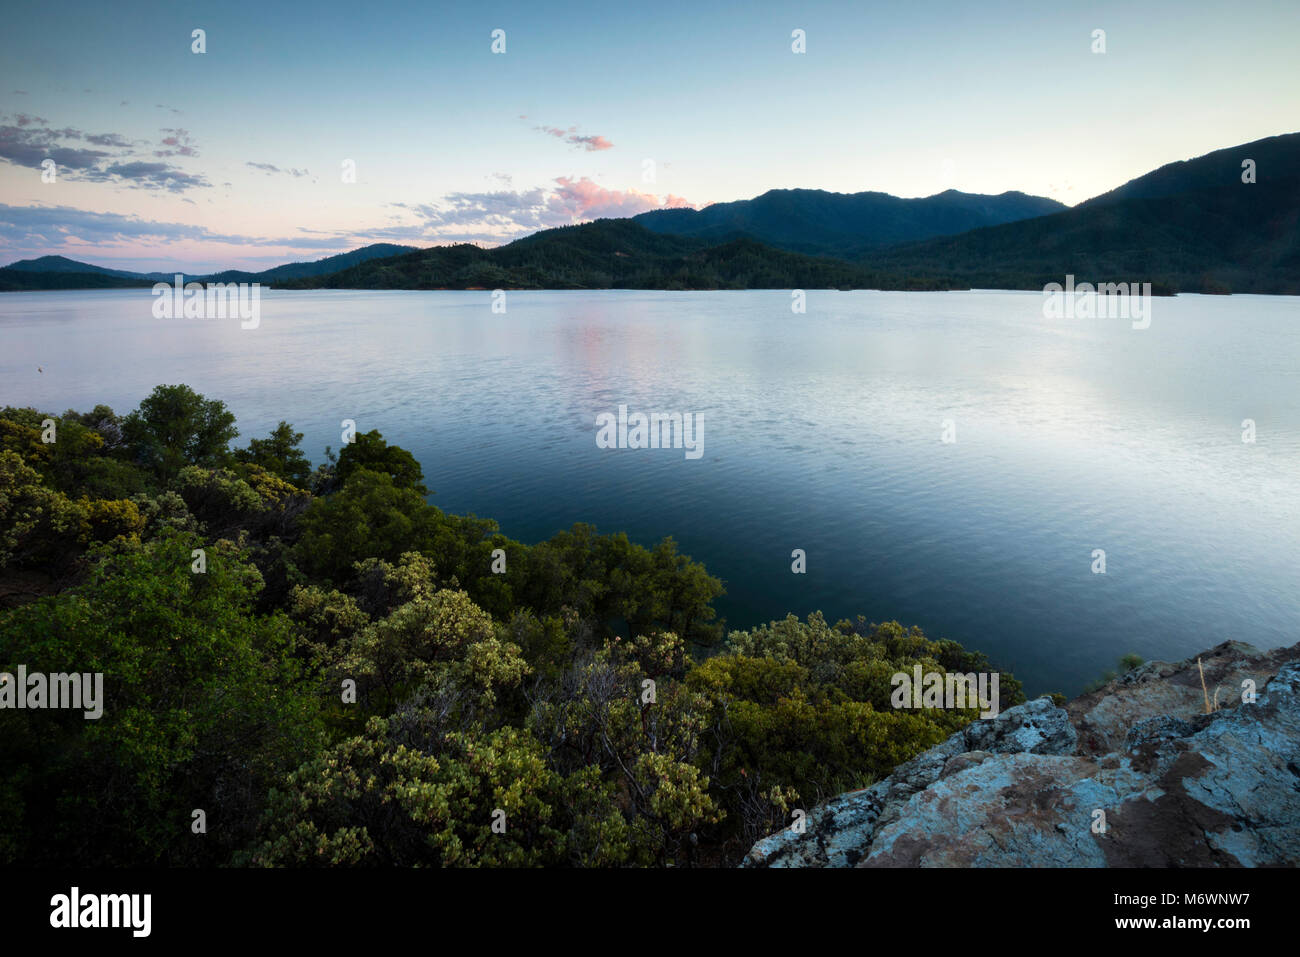 A beautiful view at dusk looking out over Whiskeytown Lake near Redding, California. - Stock Image